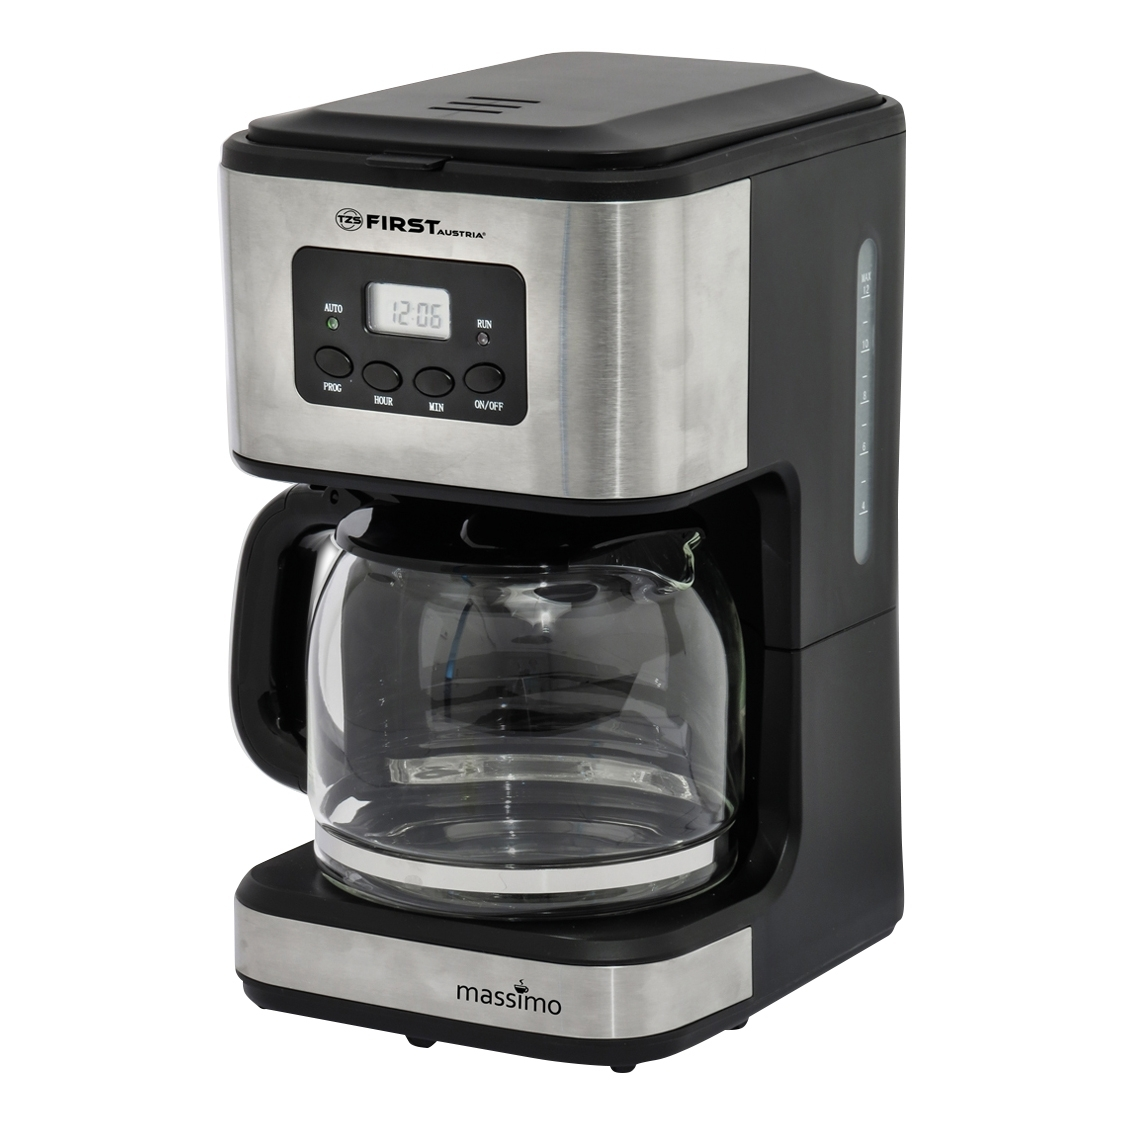 Coffee maker FIRST FA-5459-4 Grey борьба нят нам